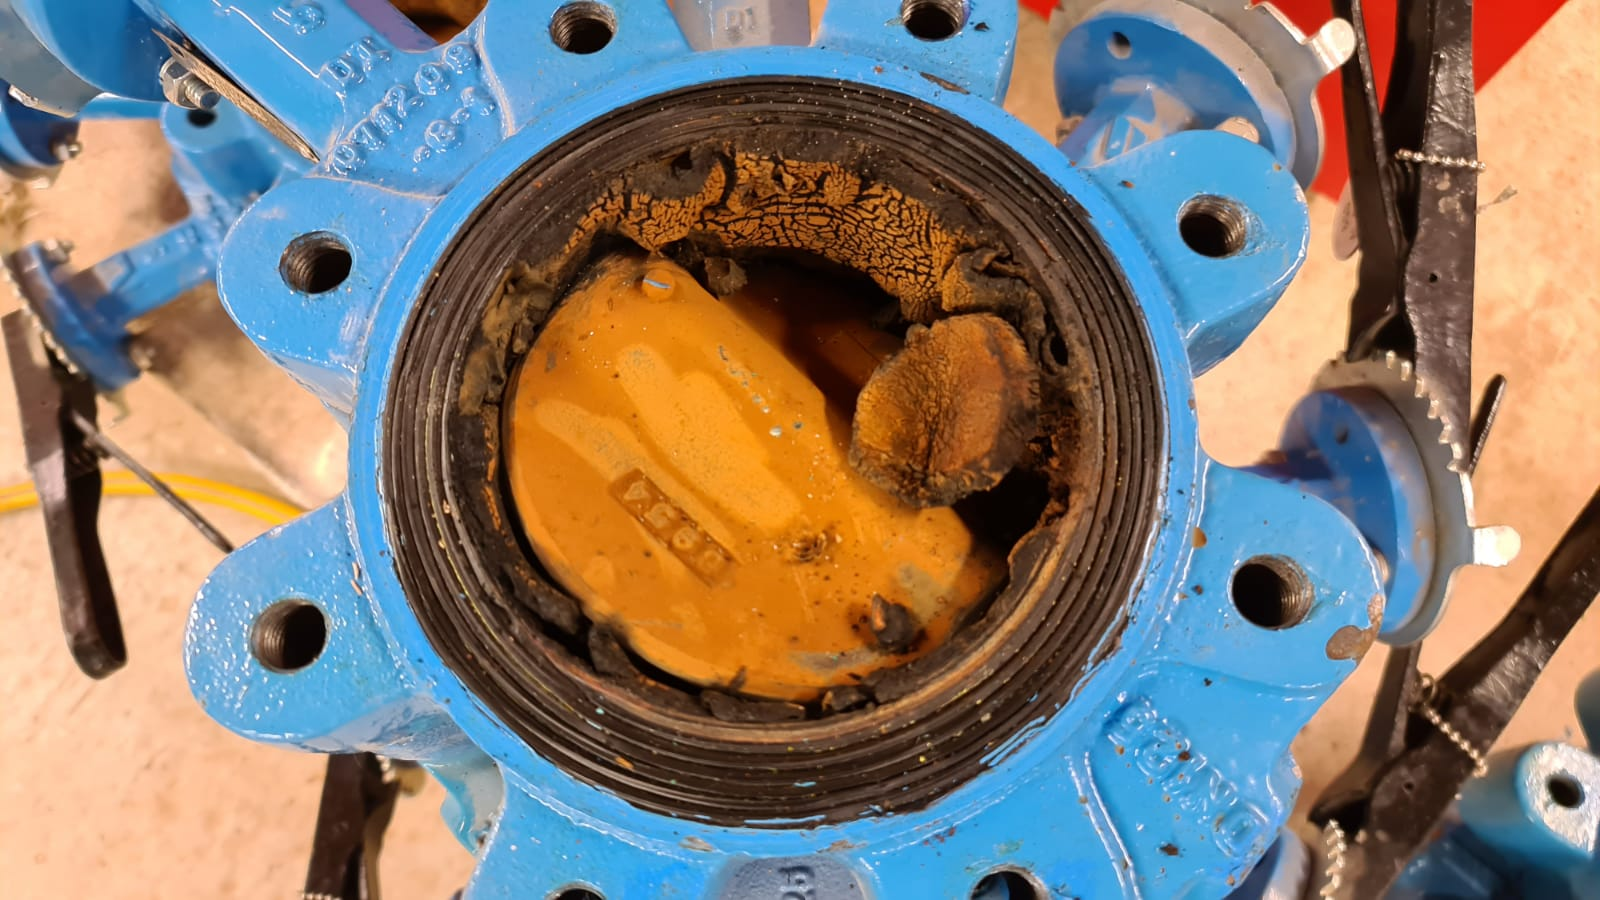 Over £3,000 of damage just on the butterfly valves due to lack of inhibitor in the system over the last few years01